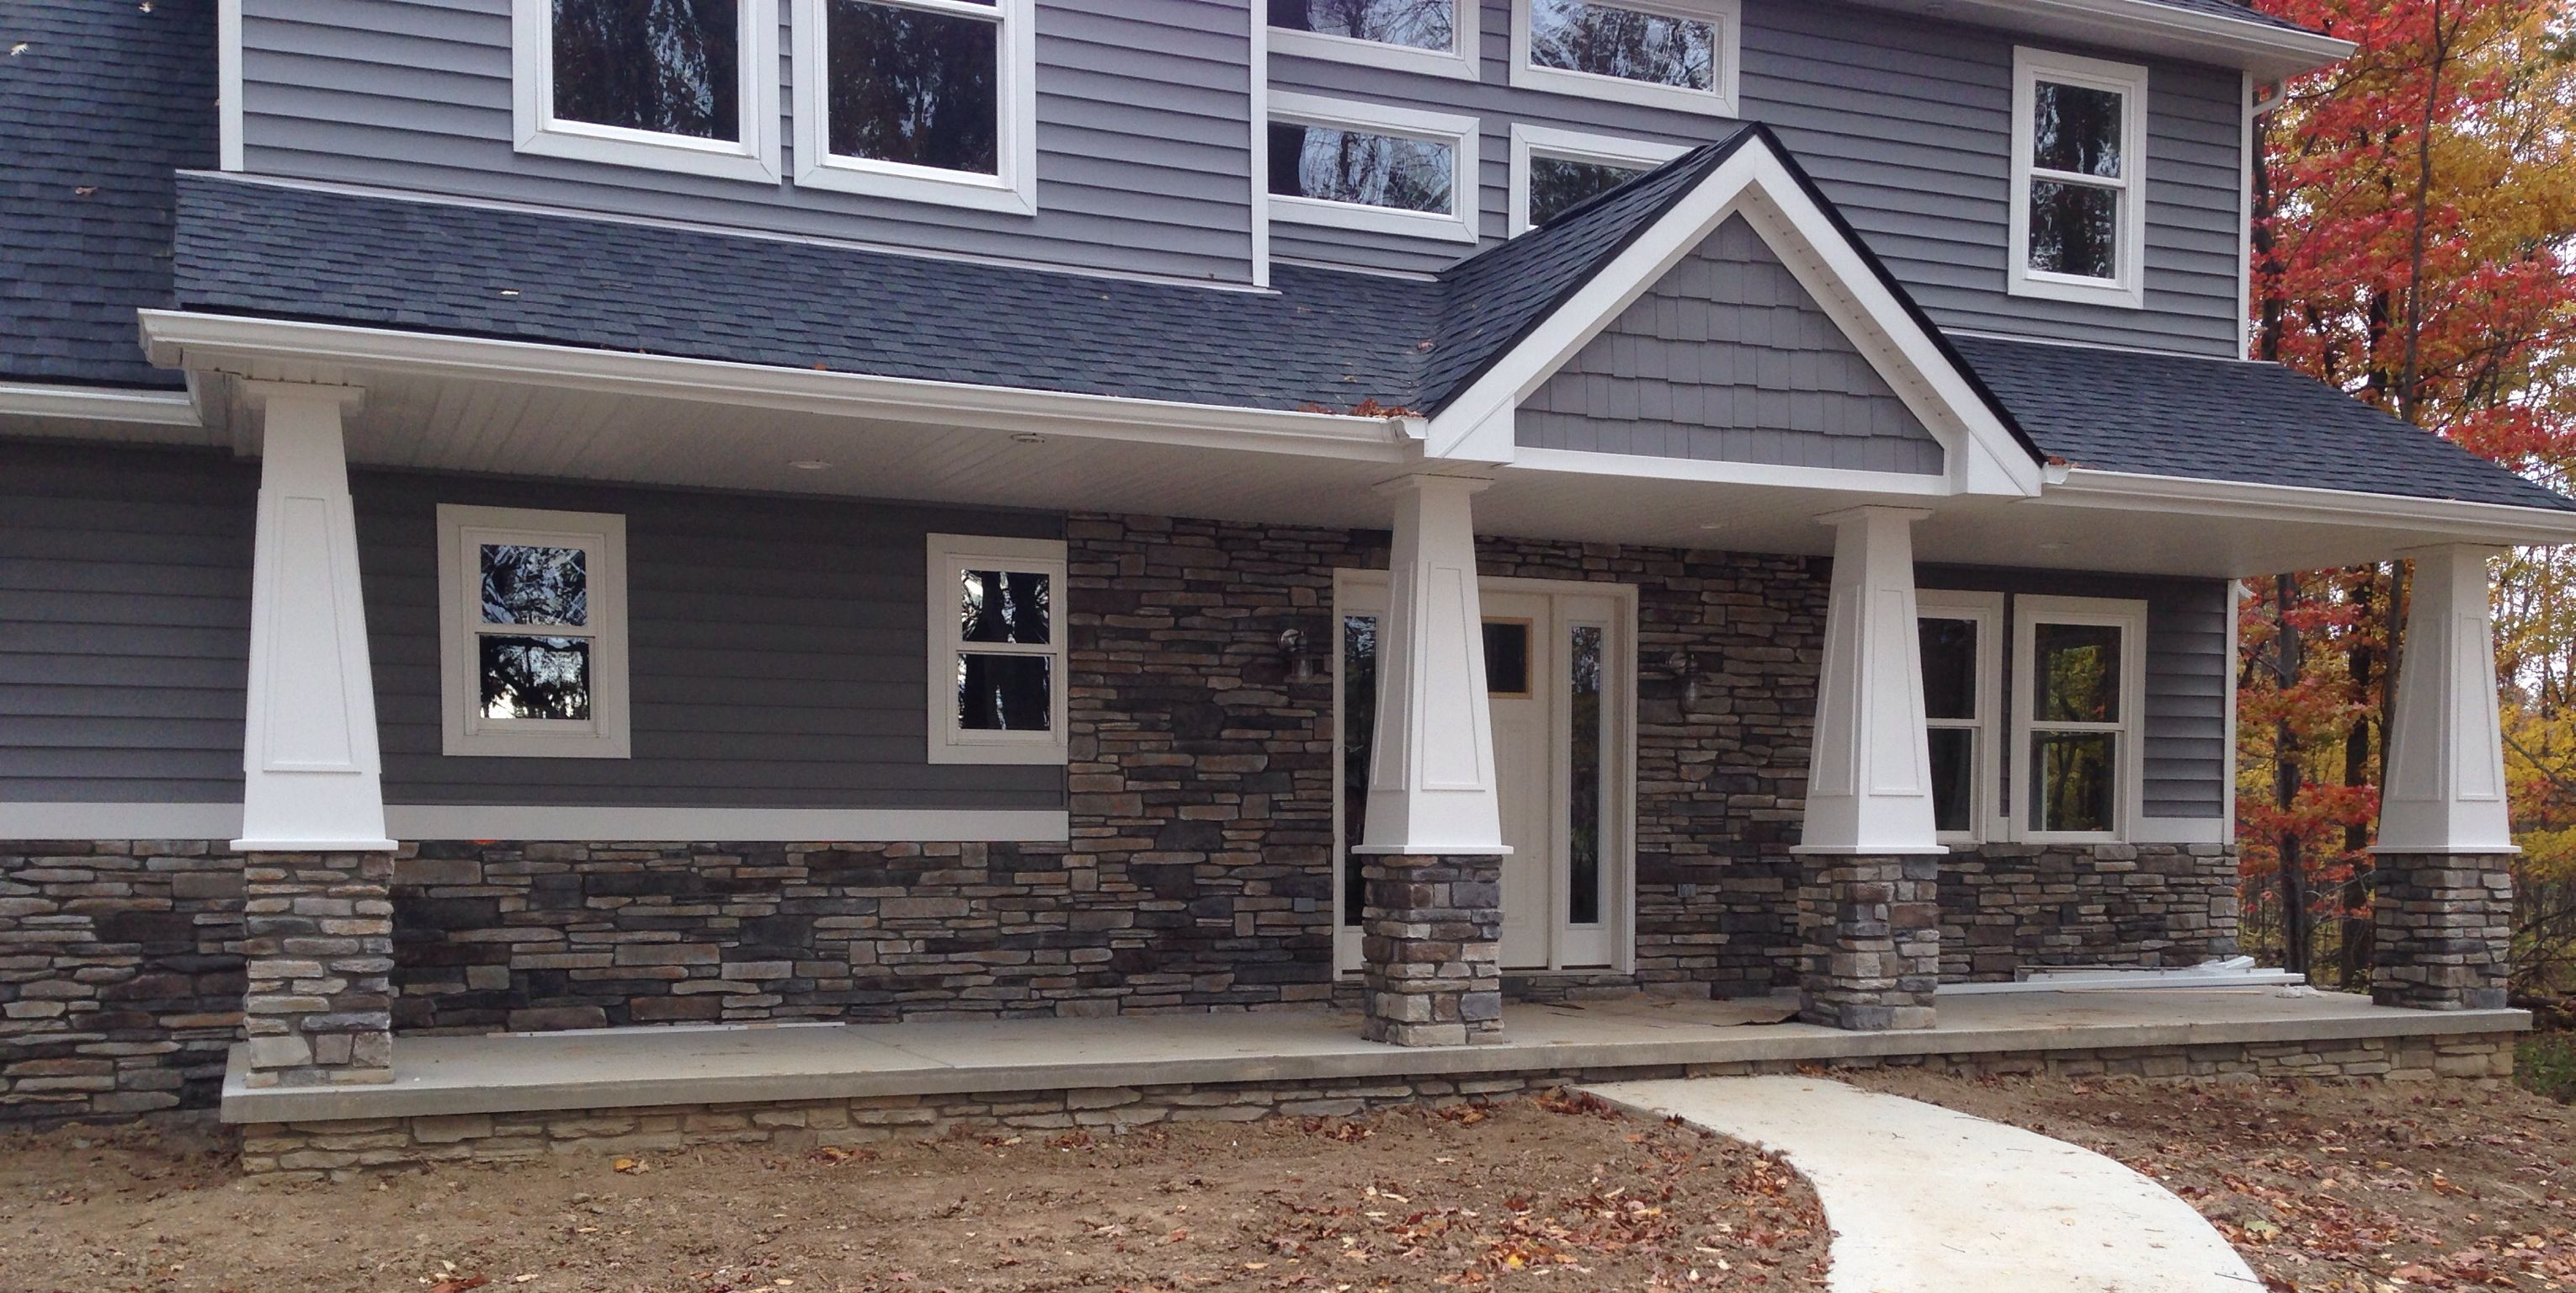 Echo ridge southern ledgestone by boral cultured stone for Exterior ledgestone